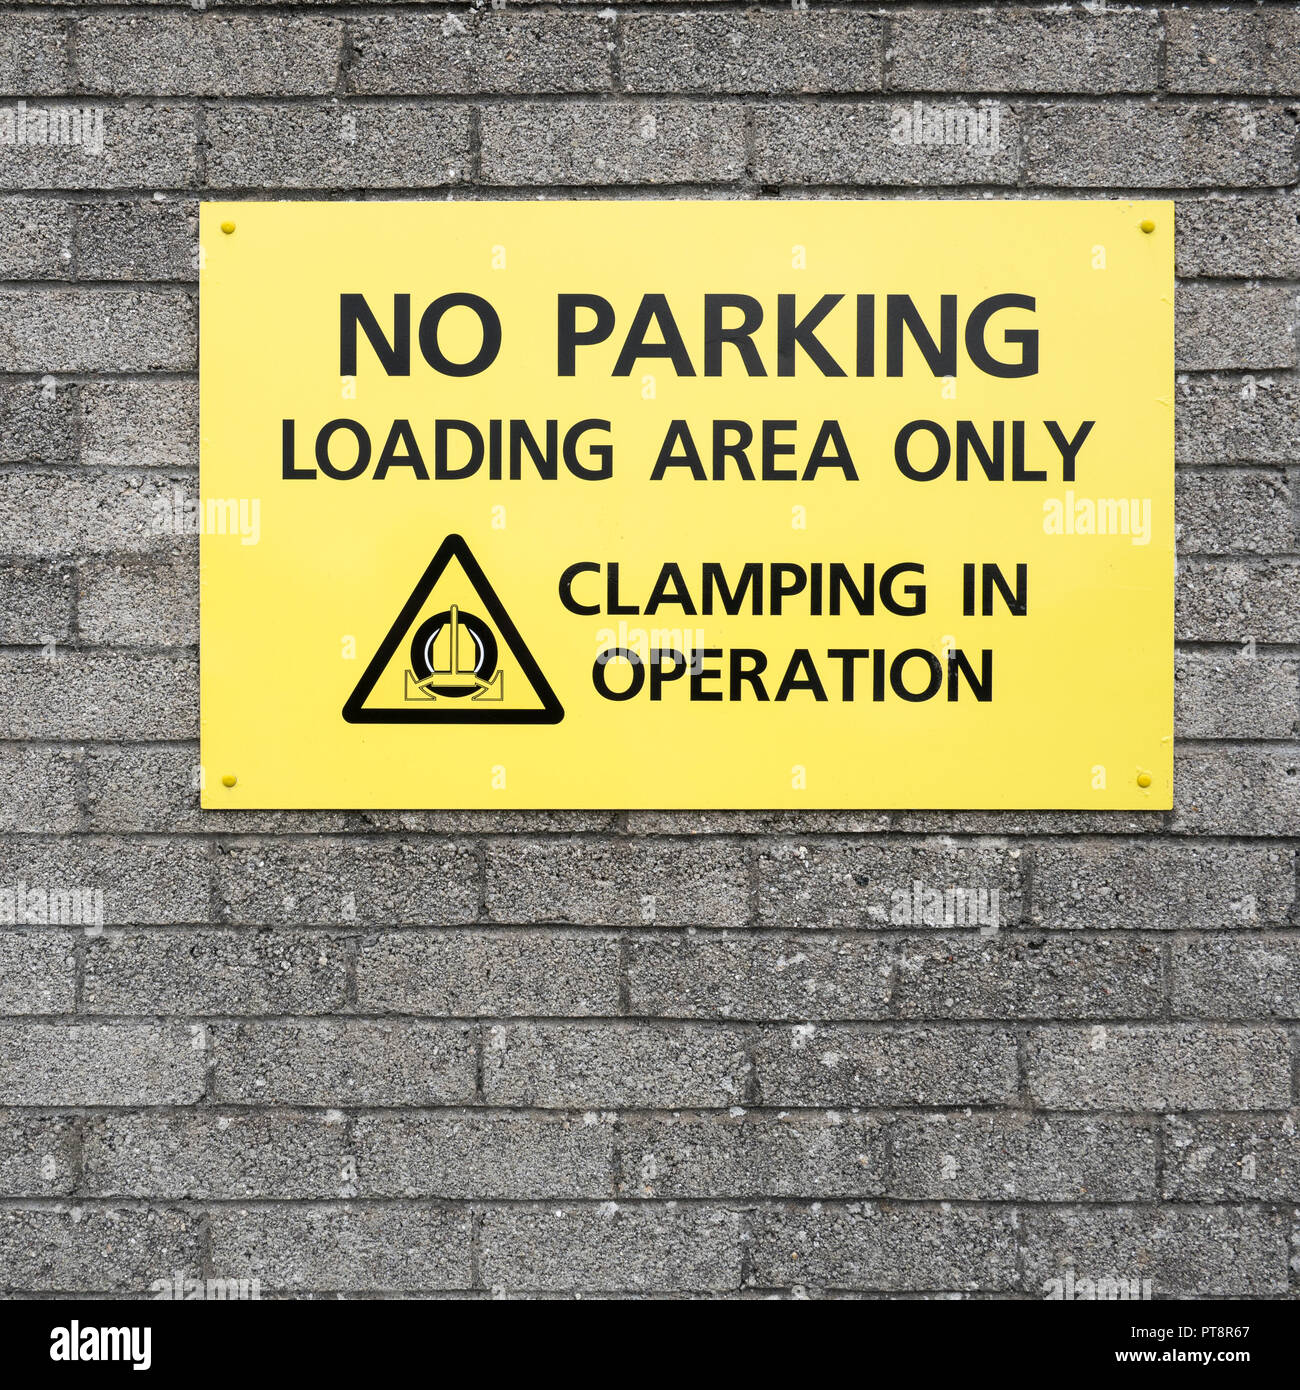 No Parling / Loading area warning sign. - Stock Image